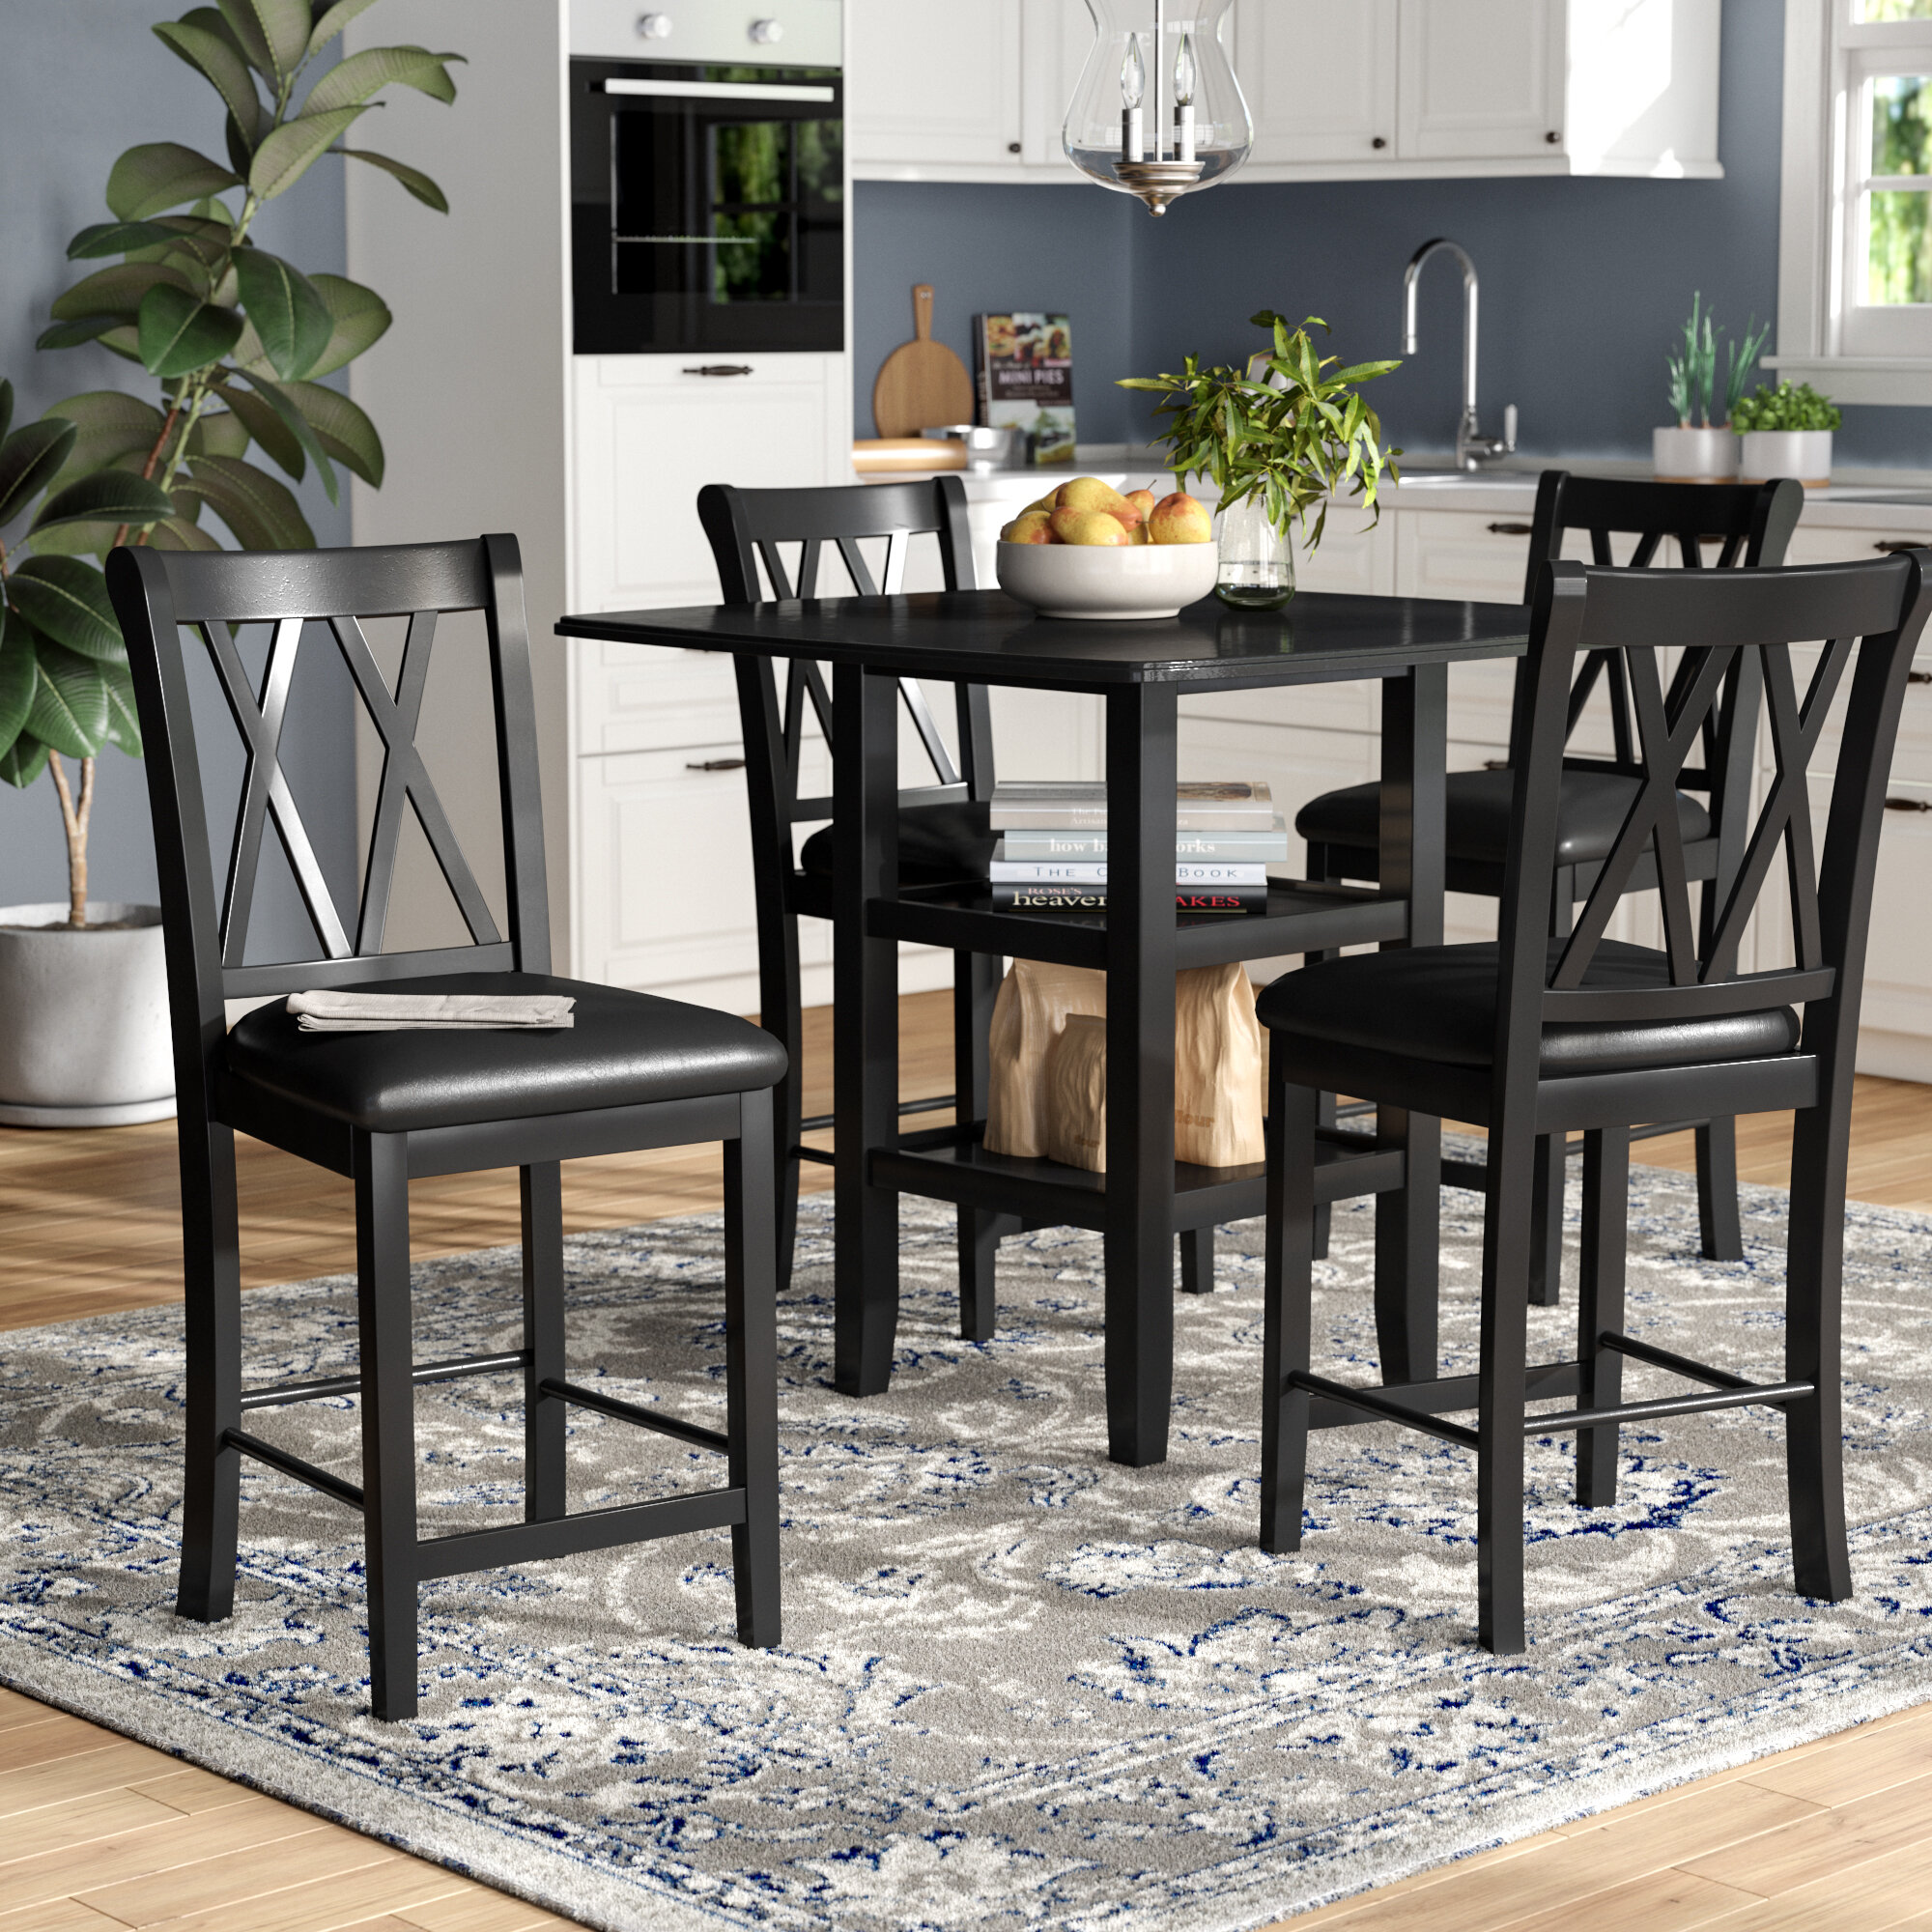 Picture of: Gracie Oaks Wanette 5 Piece Counter Height Dining Set Reviews Wayfair